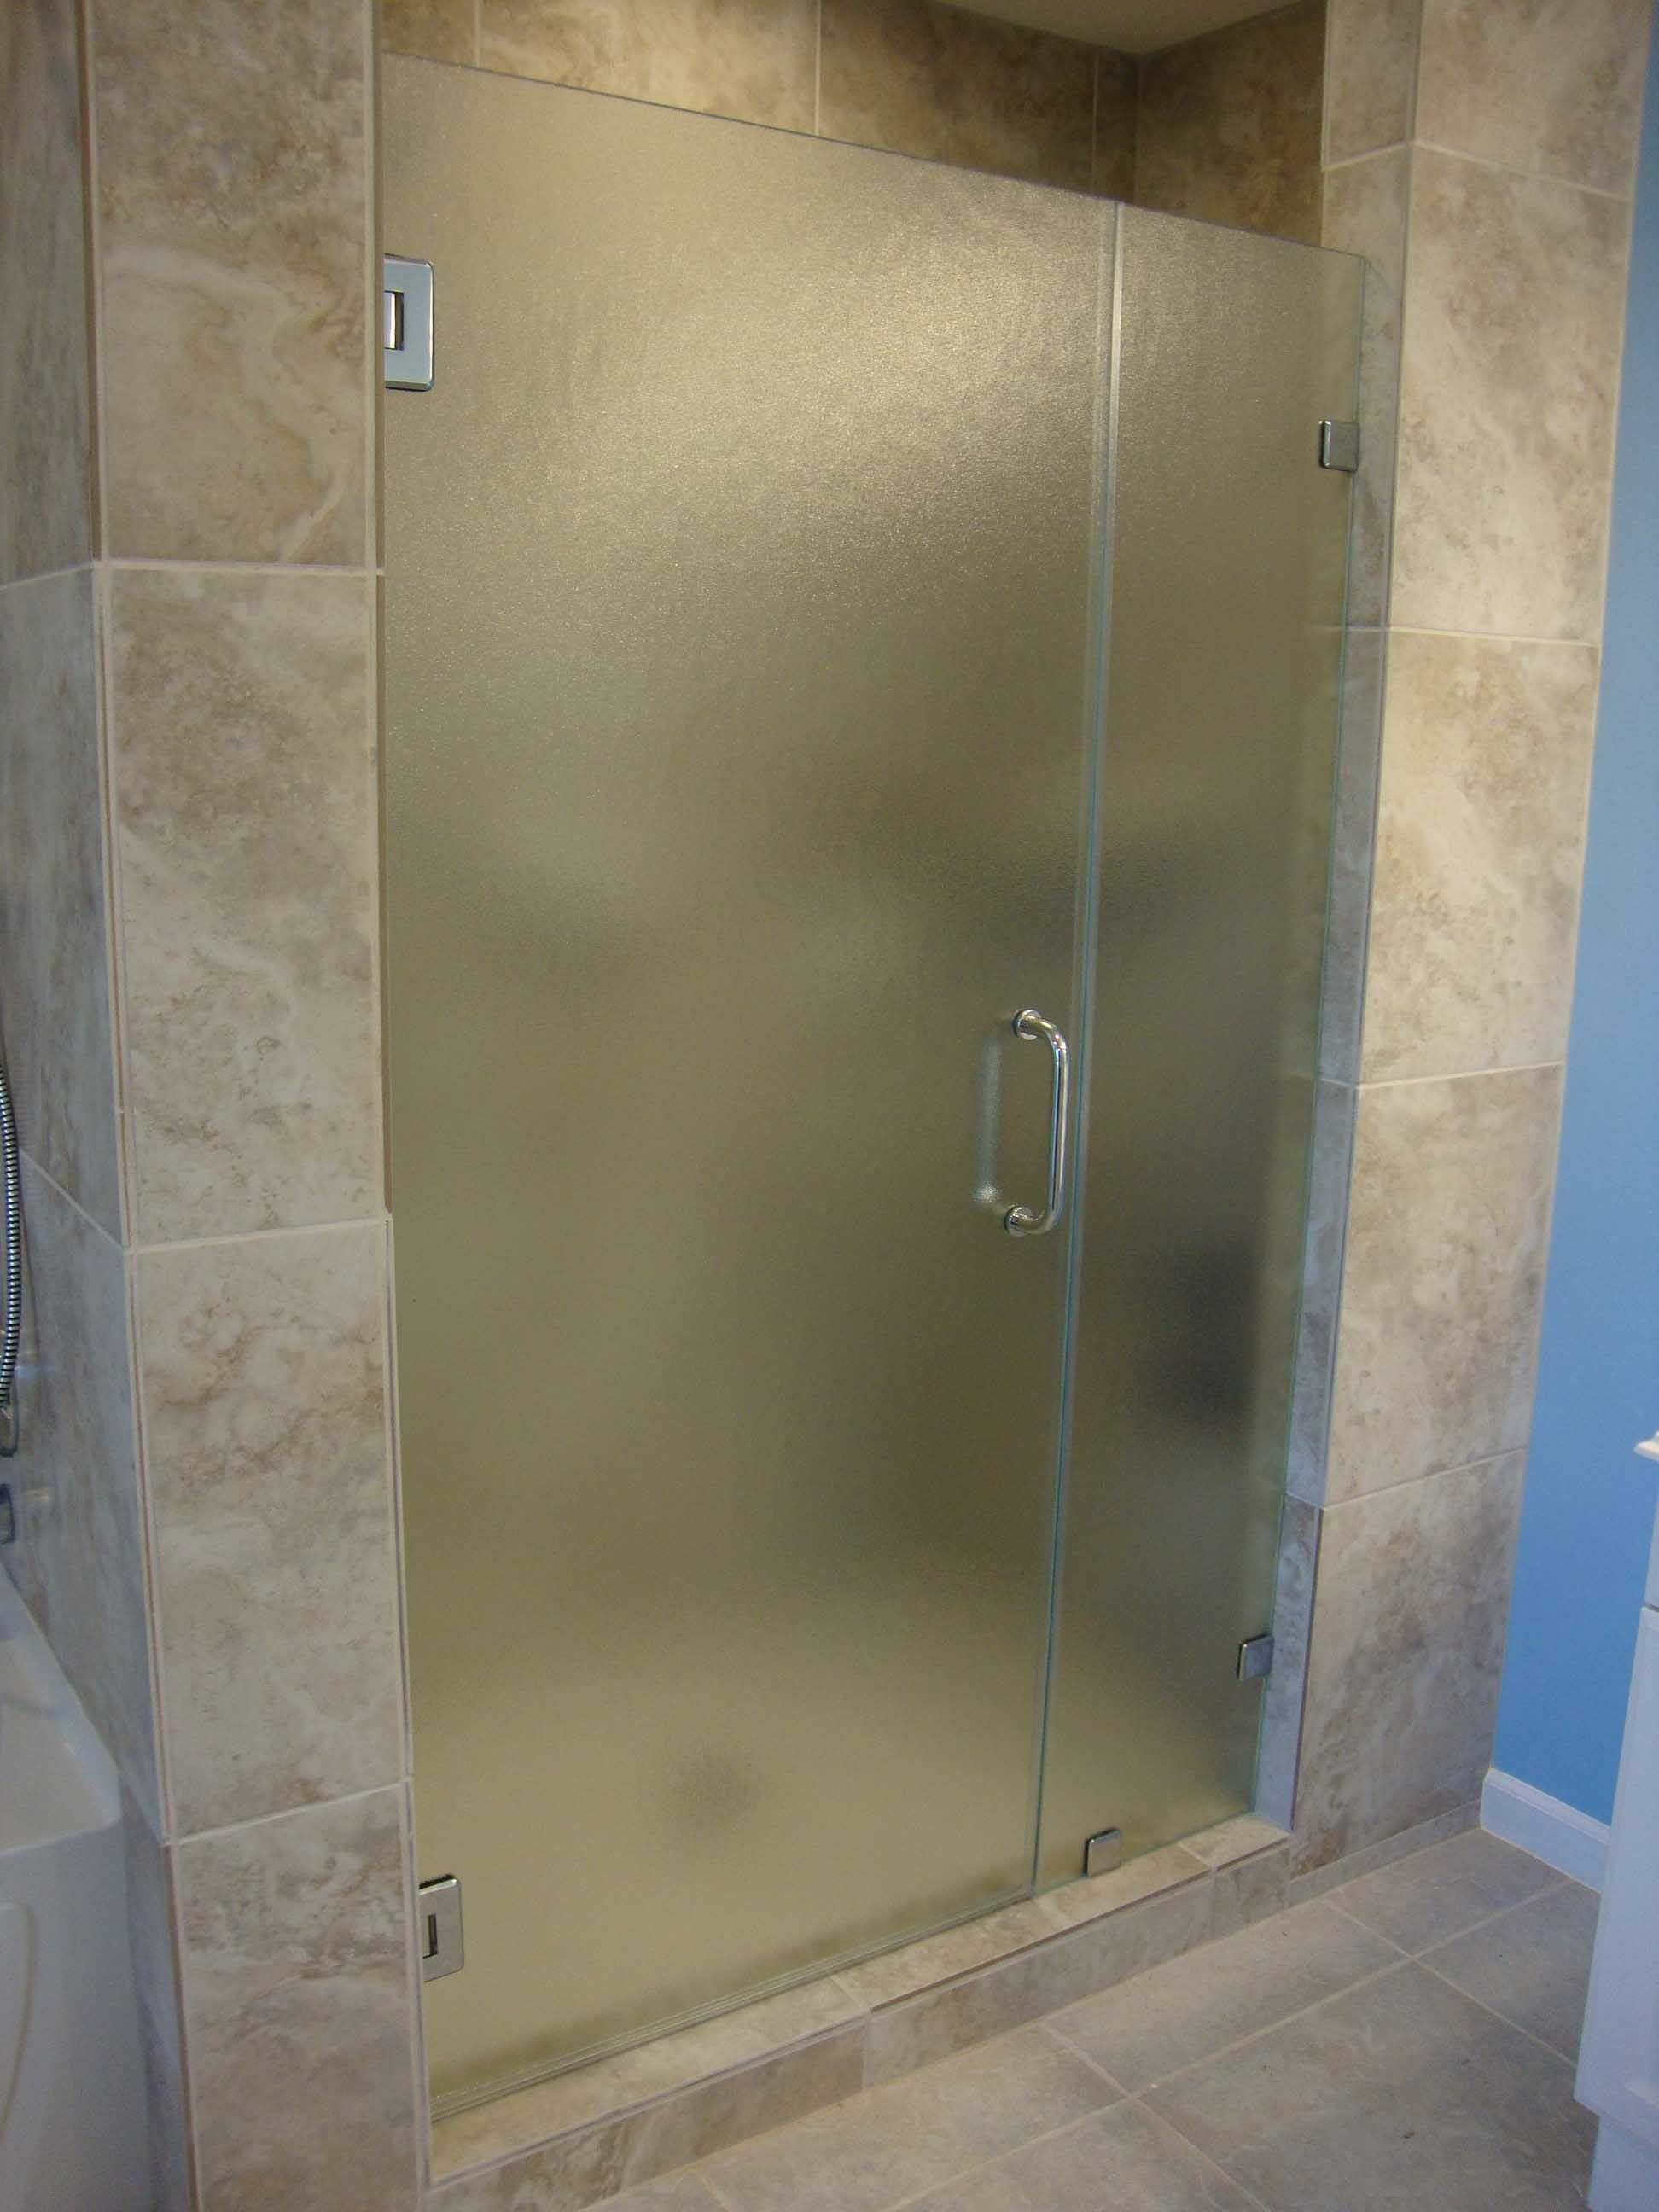 Bathroom shower doors frameless - Bathroom Mesmerizing Grey Ceramic Wall Bathroom Installation With Single Frameless Glass Shower Frosted Doors Pictures With Unique Stainless Door Handle In